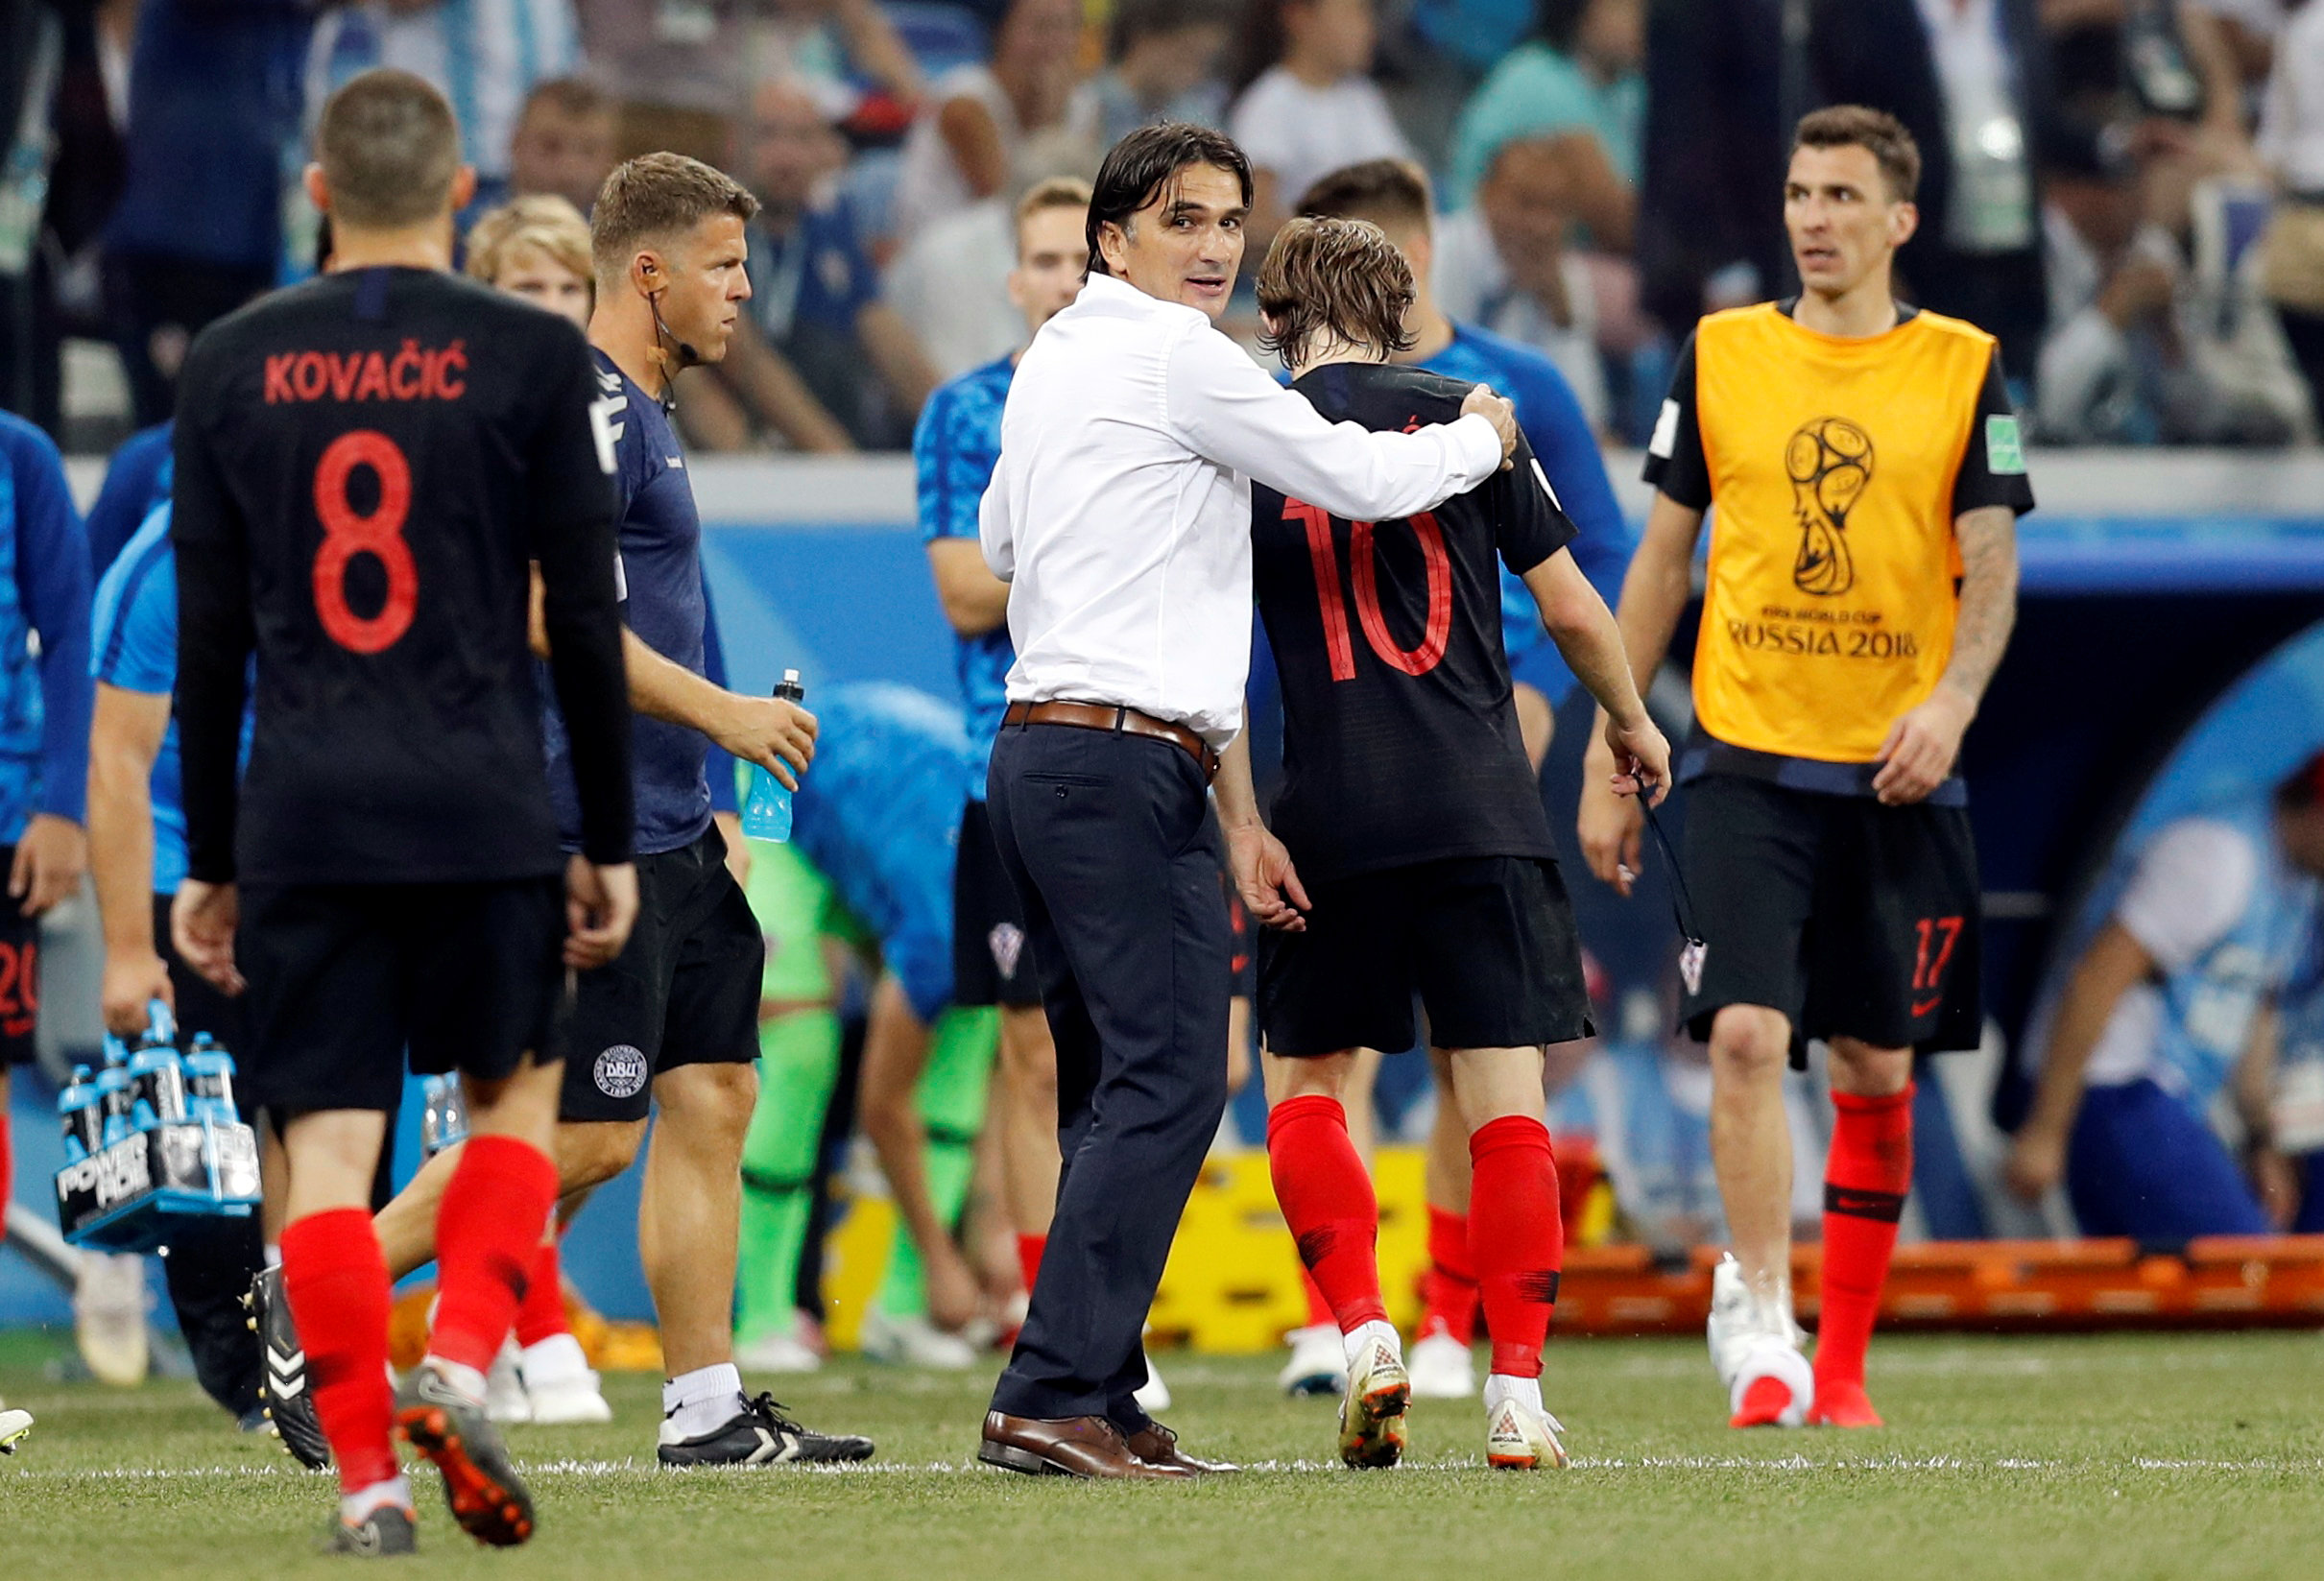 2018-07-01T203417Z_1164605381_RC1AED8576A0_RTRMADP_3_SOCCER-WORLDCUP-CRO-DNK